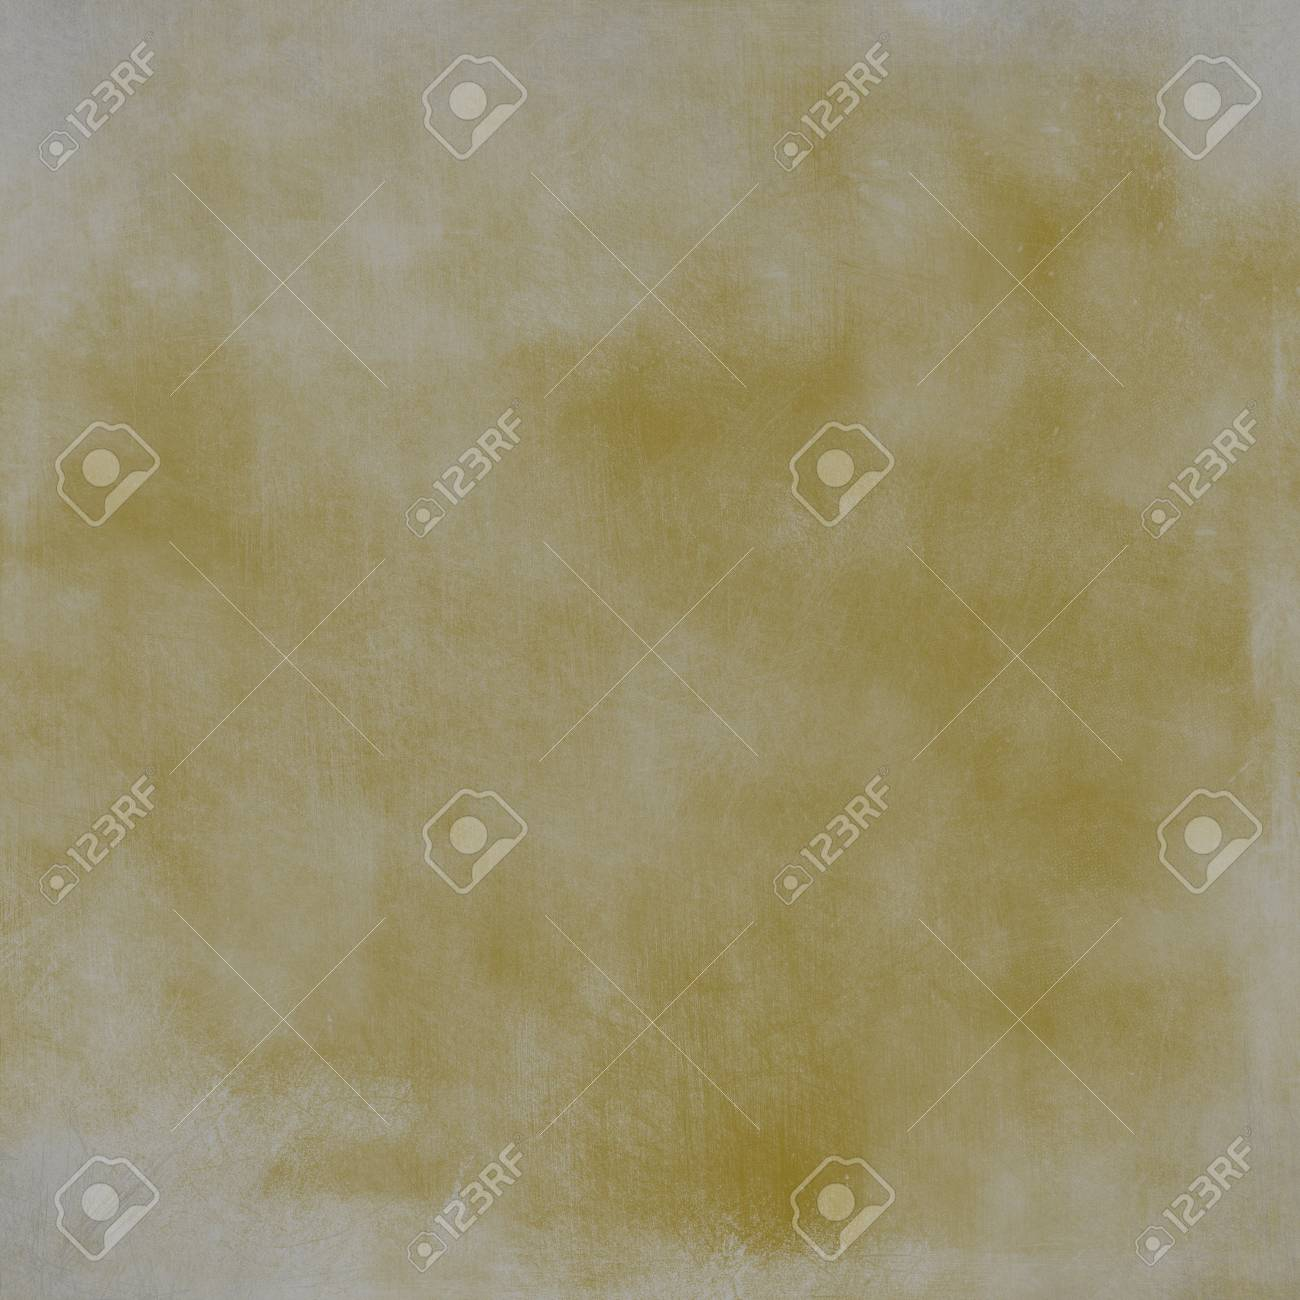 abstract background Stock Photo - 22460886